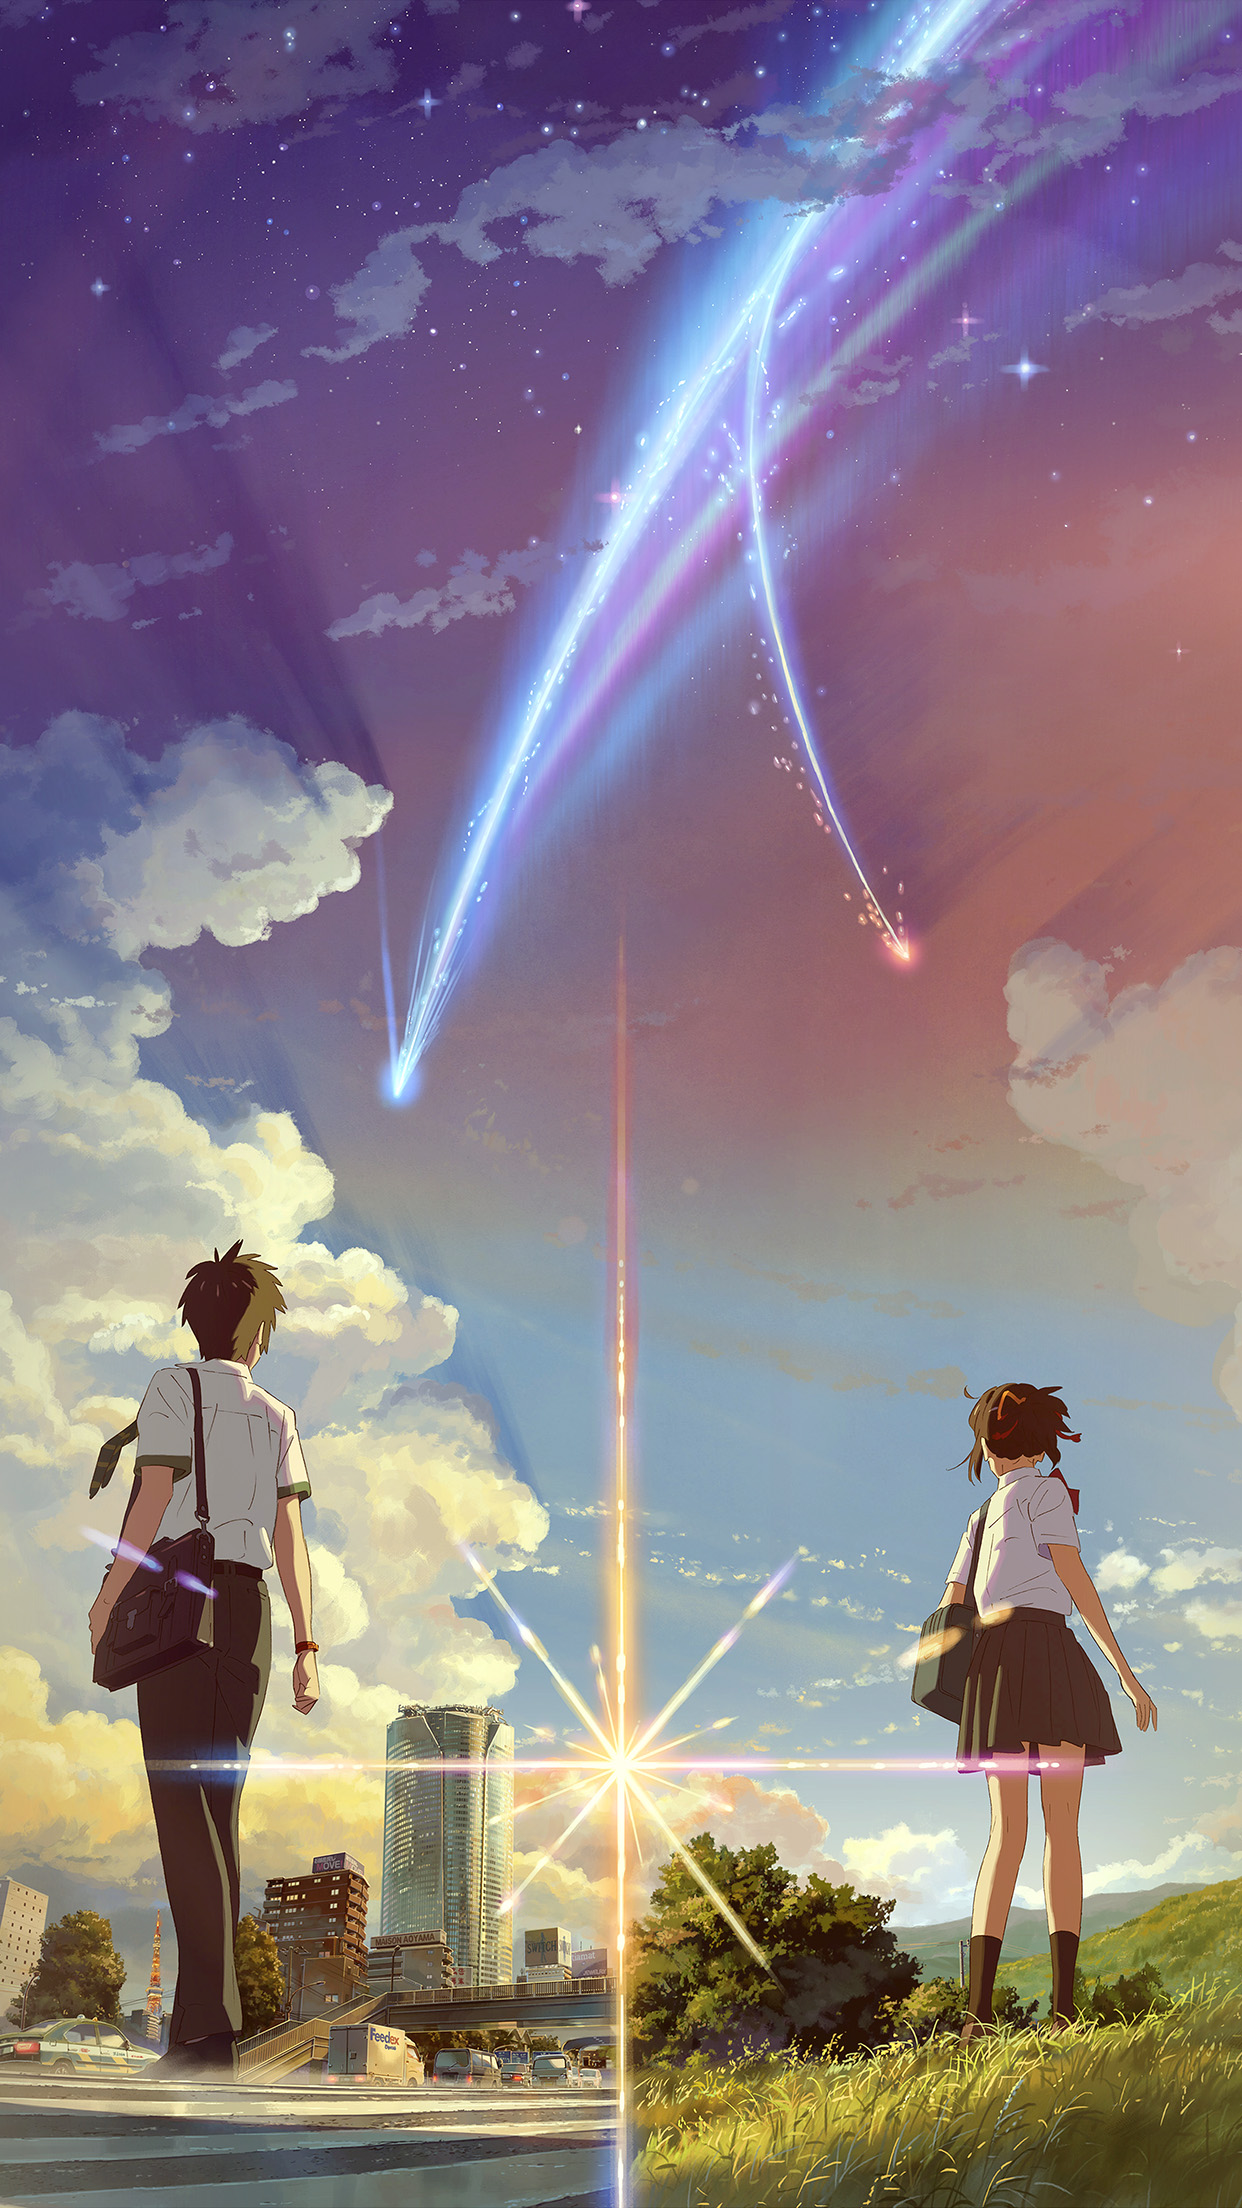 Boy And Girl Anime Art Spring Cute Flare Android Wallpaper Android